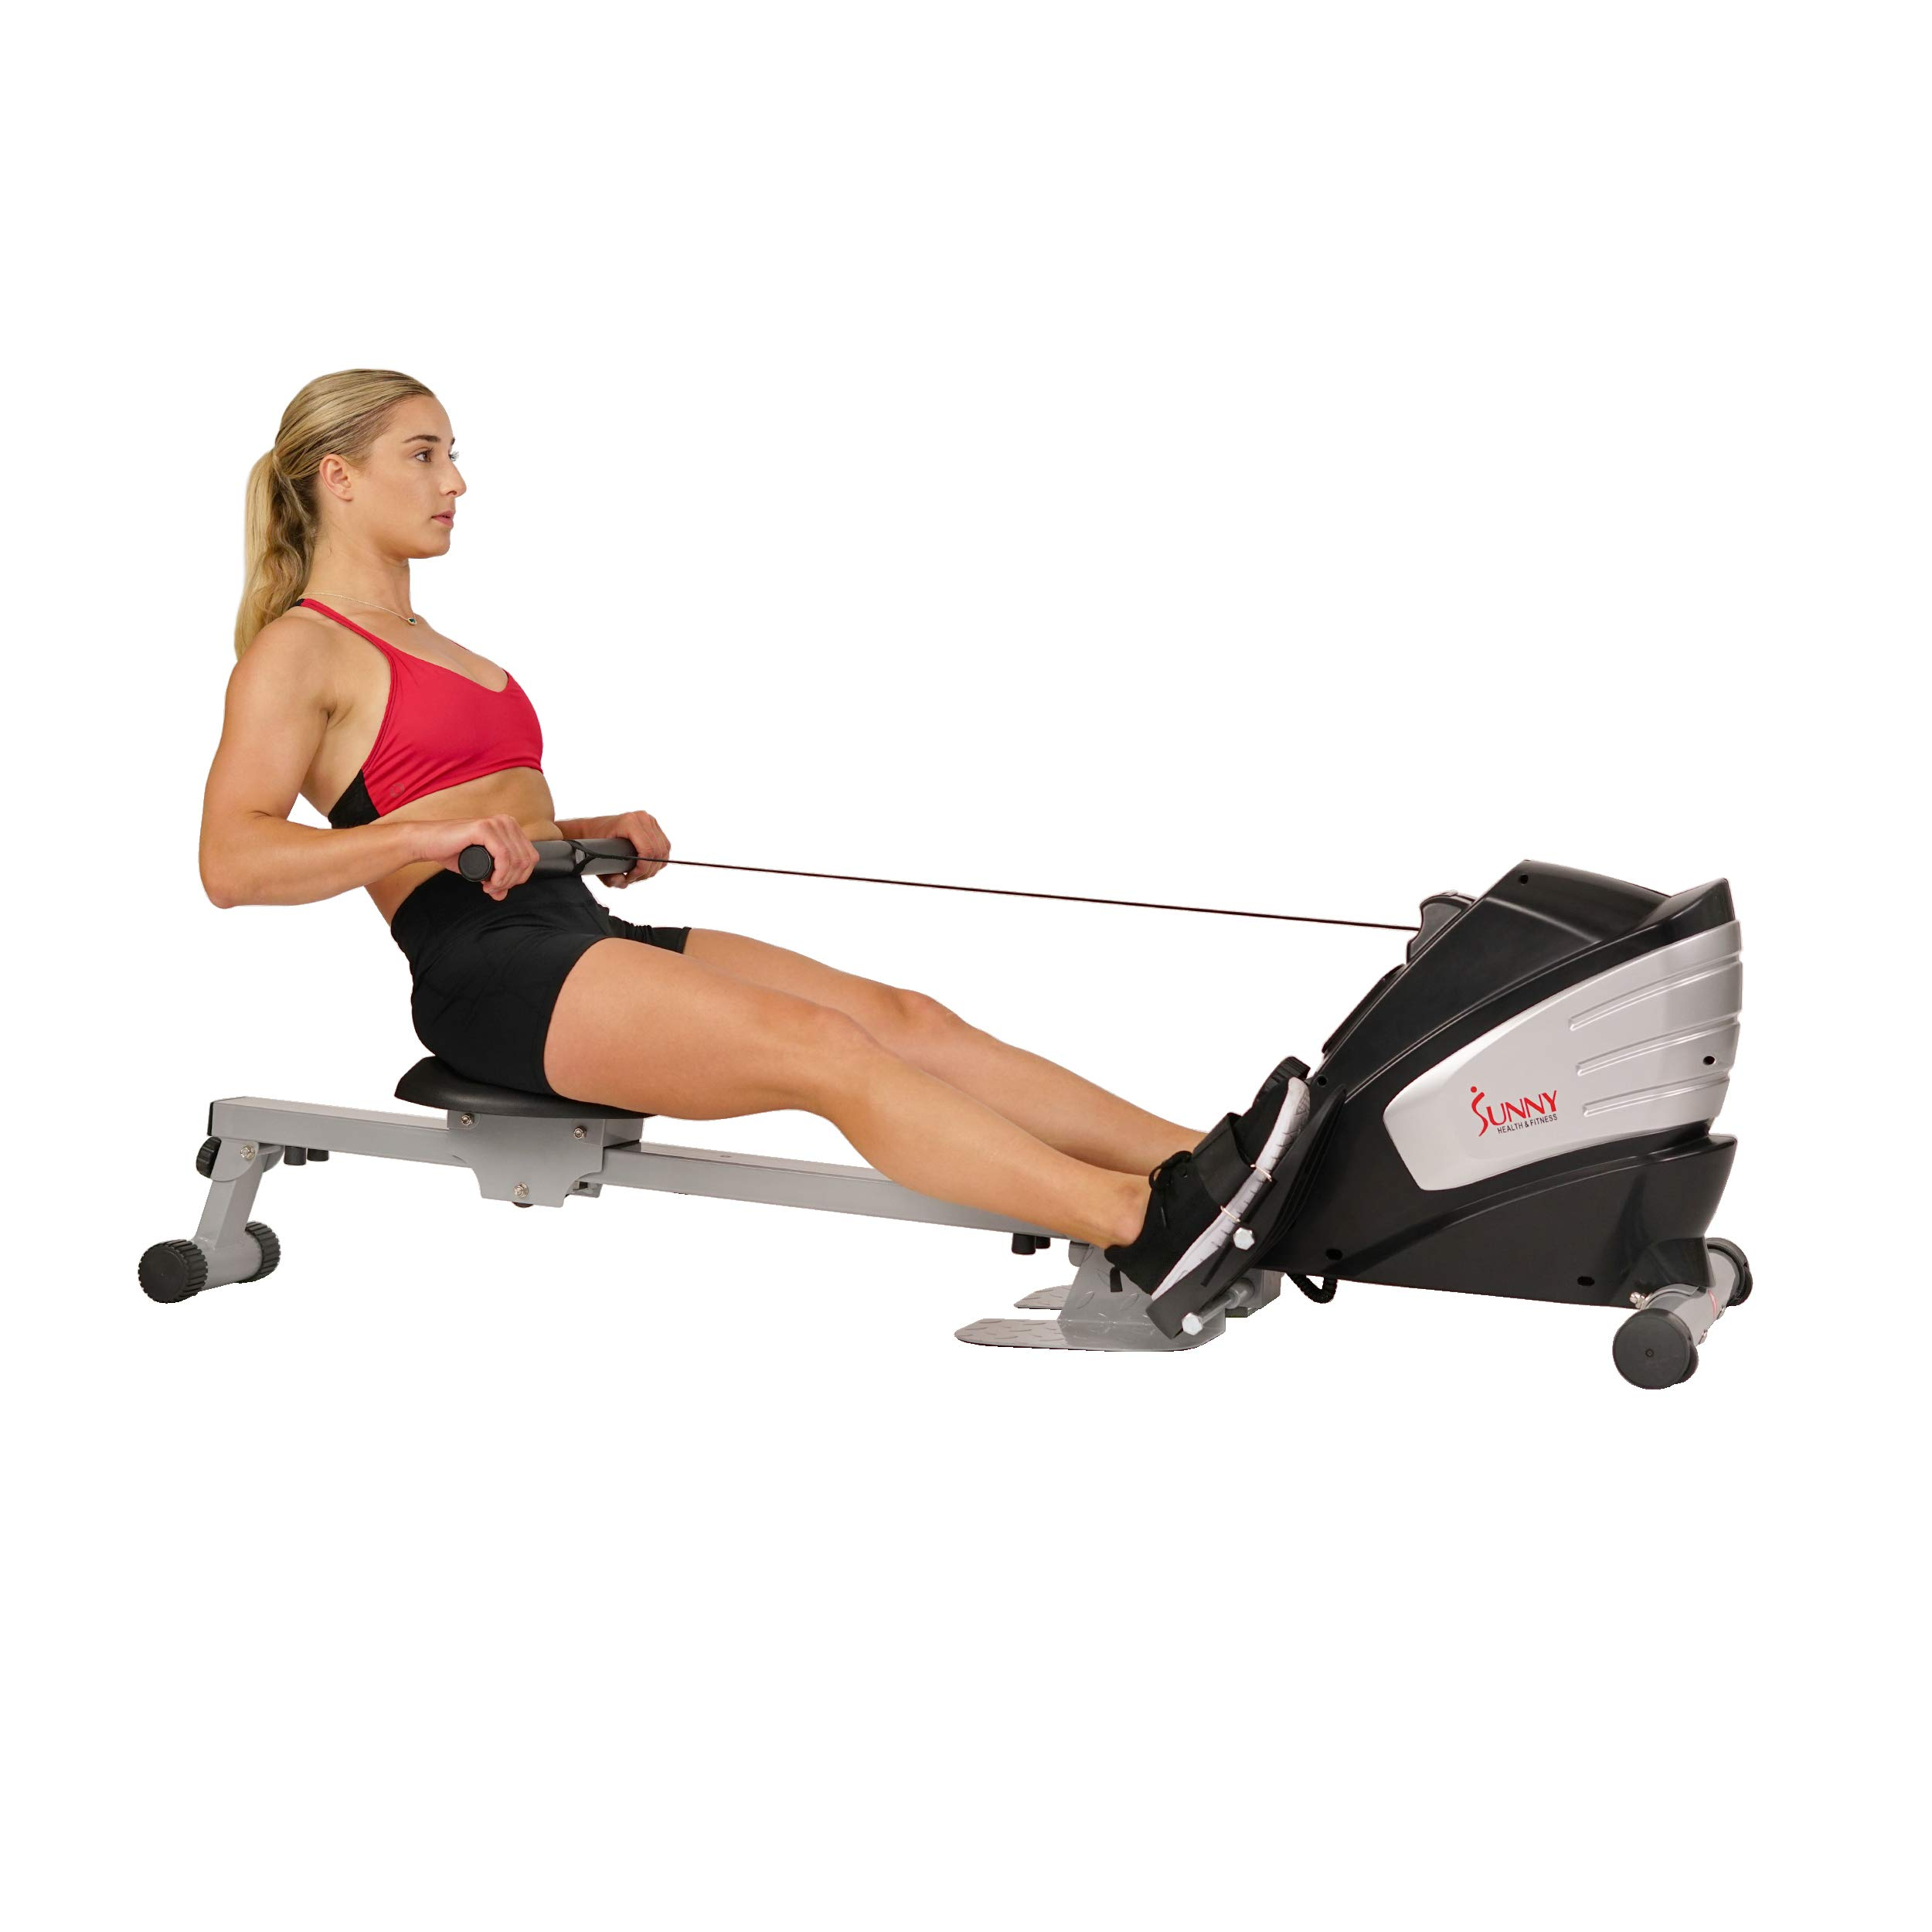 Sunny Health & Fitness Dual Function Magnetic Rowing Machine w/ Digital Monitor, Multi-Exercise Step Plates and Foldable -  SF-RW5622